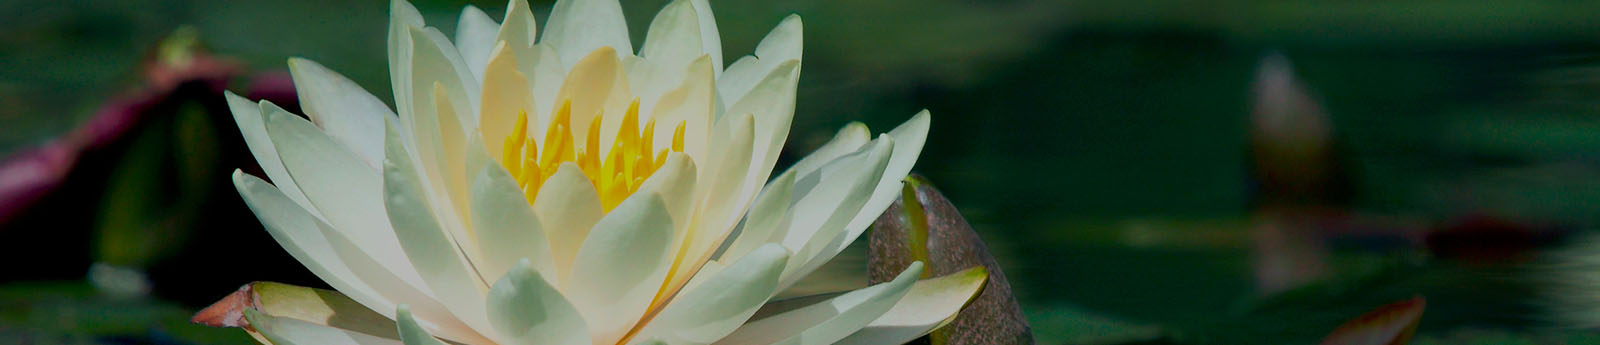 Resources | DeLoach-McKerley-Prescott Funeral Home and Cremation Service